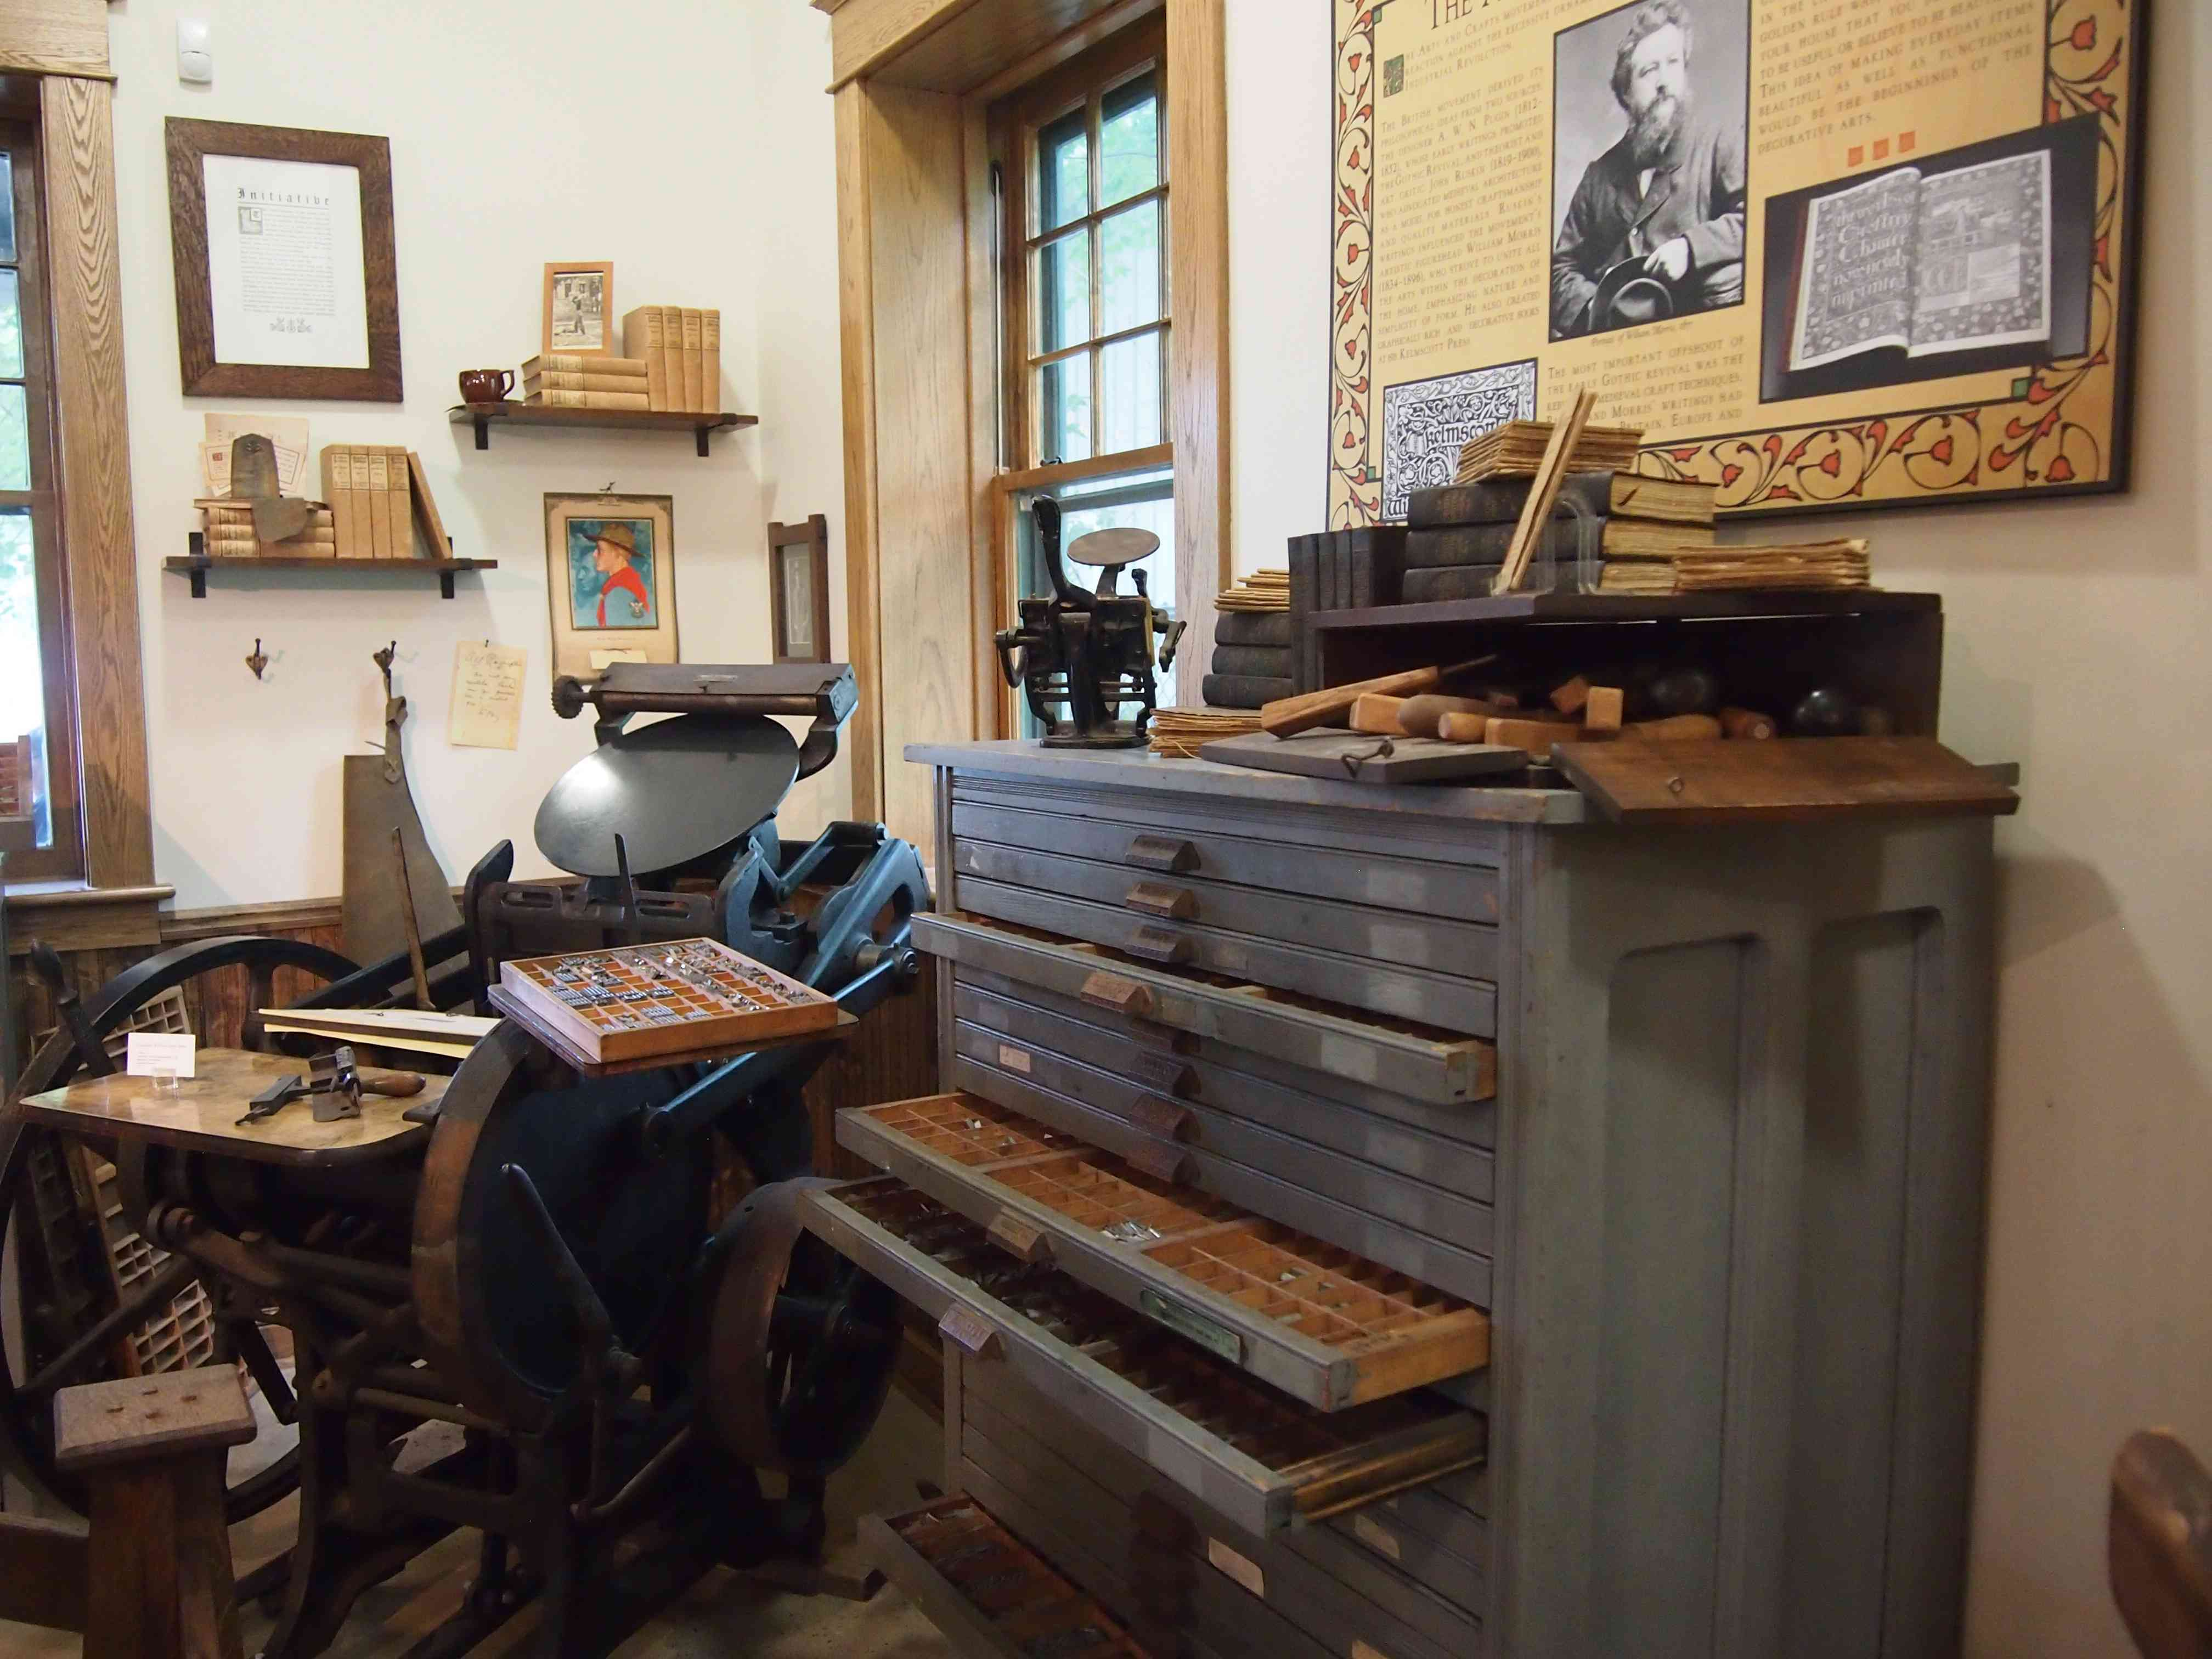 room in a museum with printing press equipment and pictures on the wall